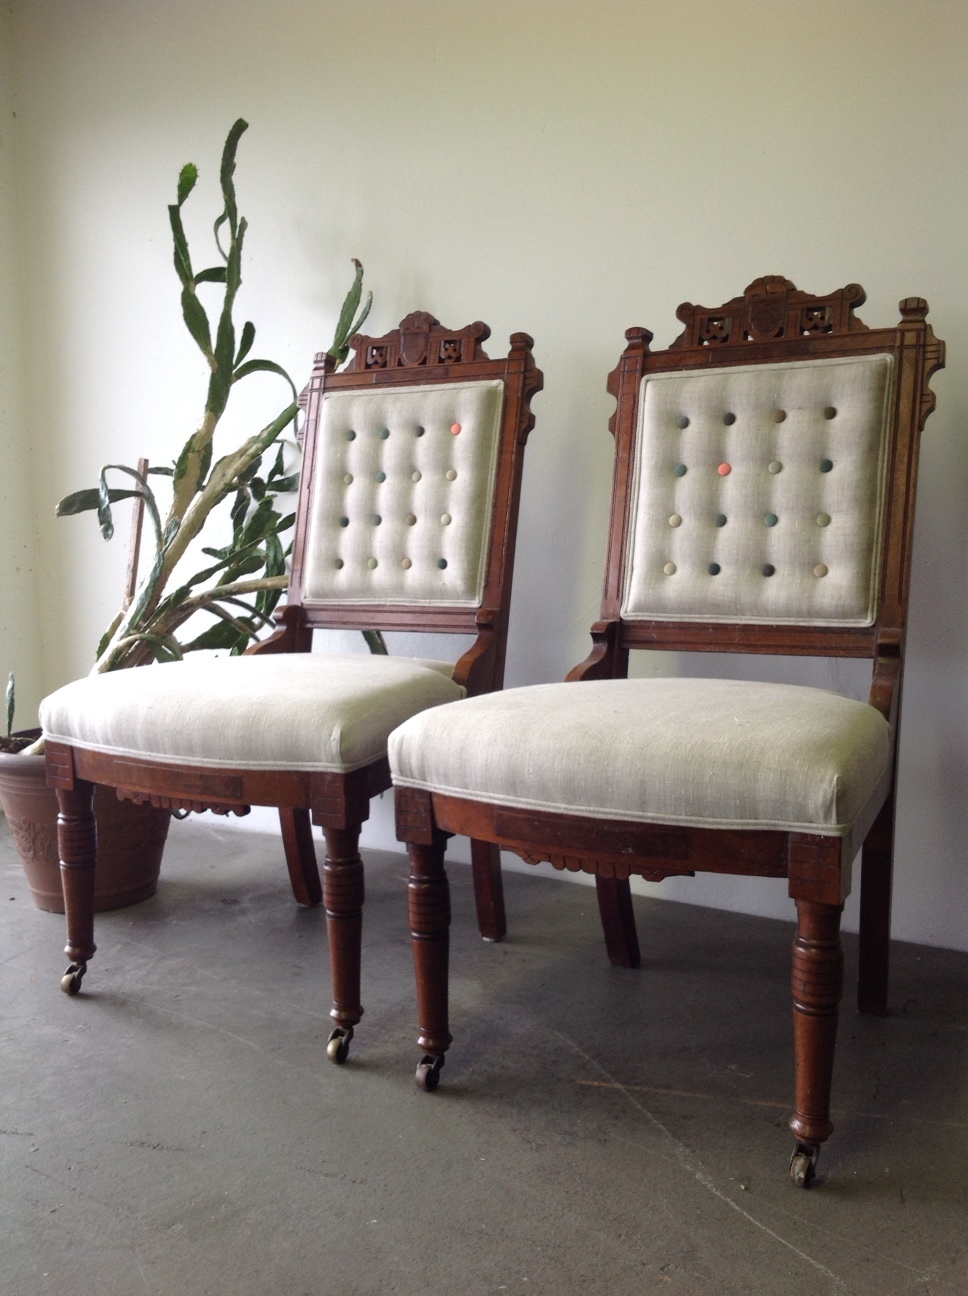 Antique Eastlake dining chairs upholstered in linen, with multi-coloured shallow button tufting and double piping trim.